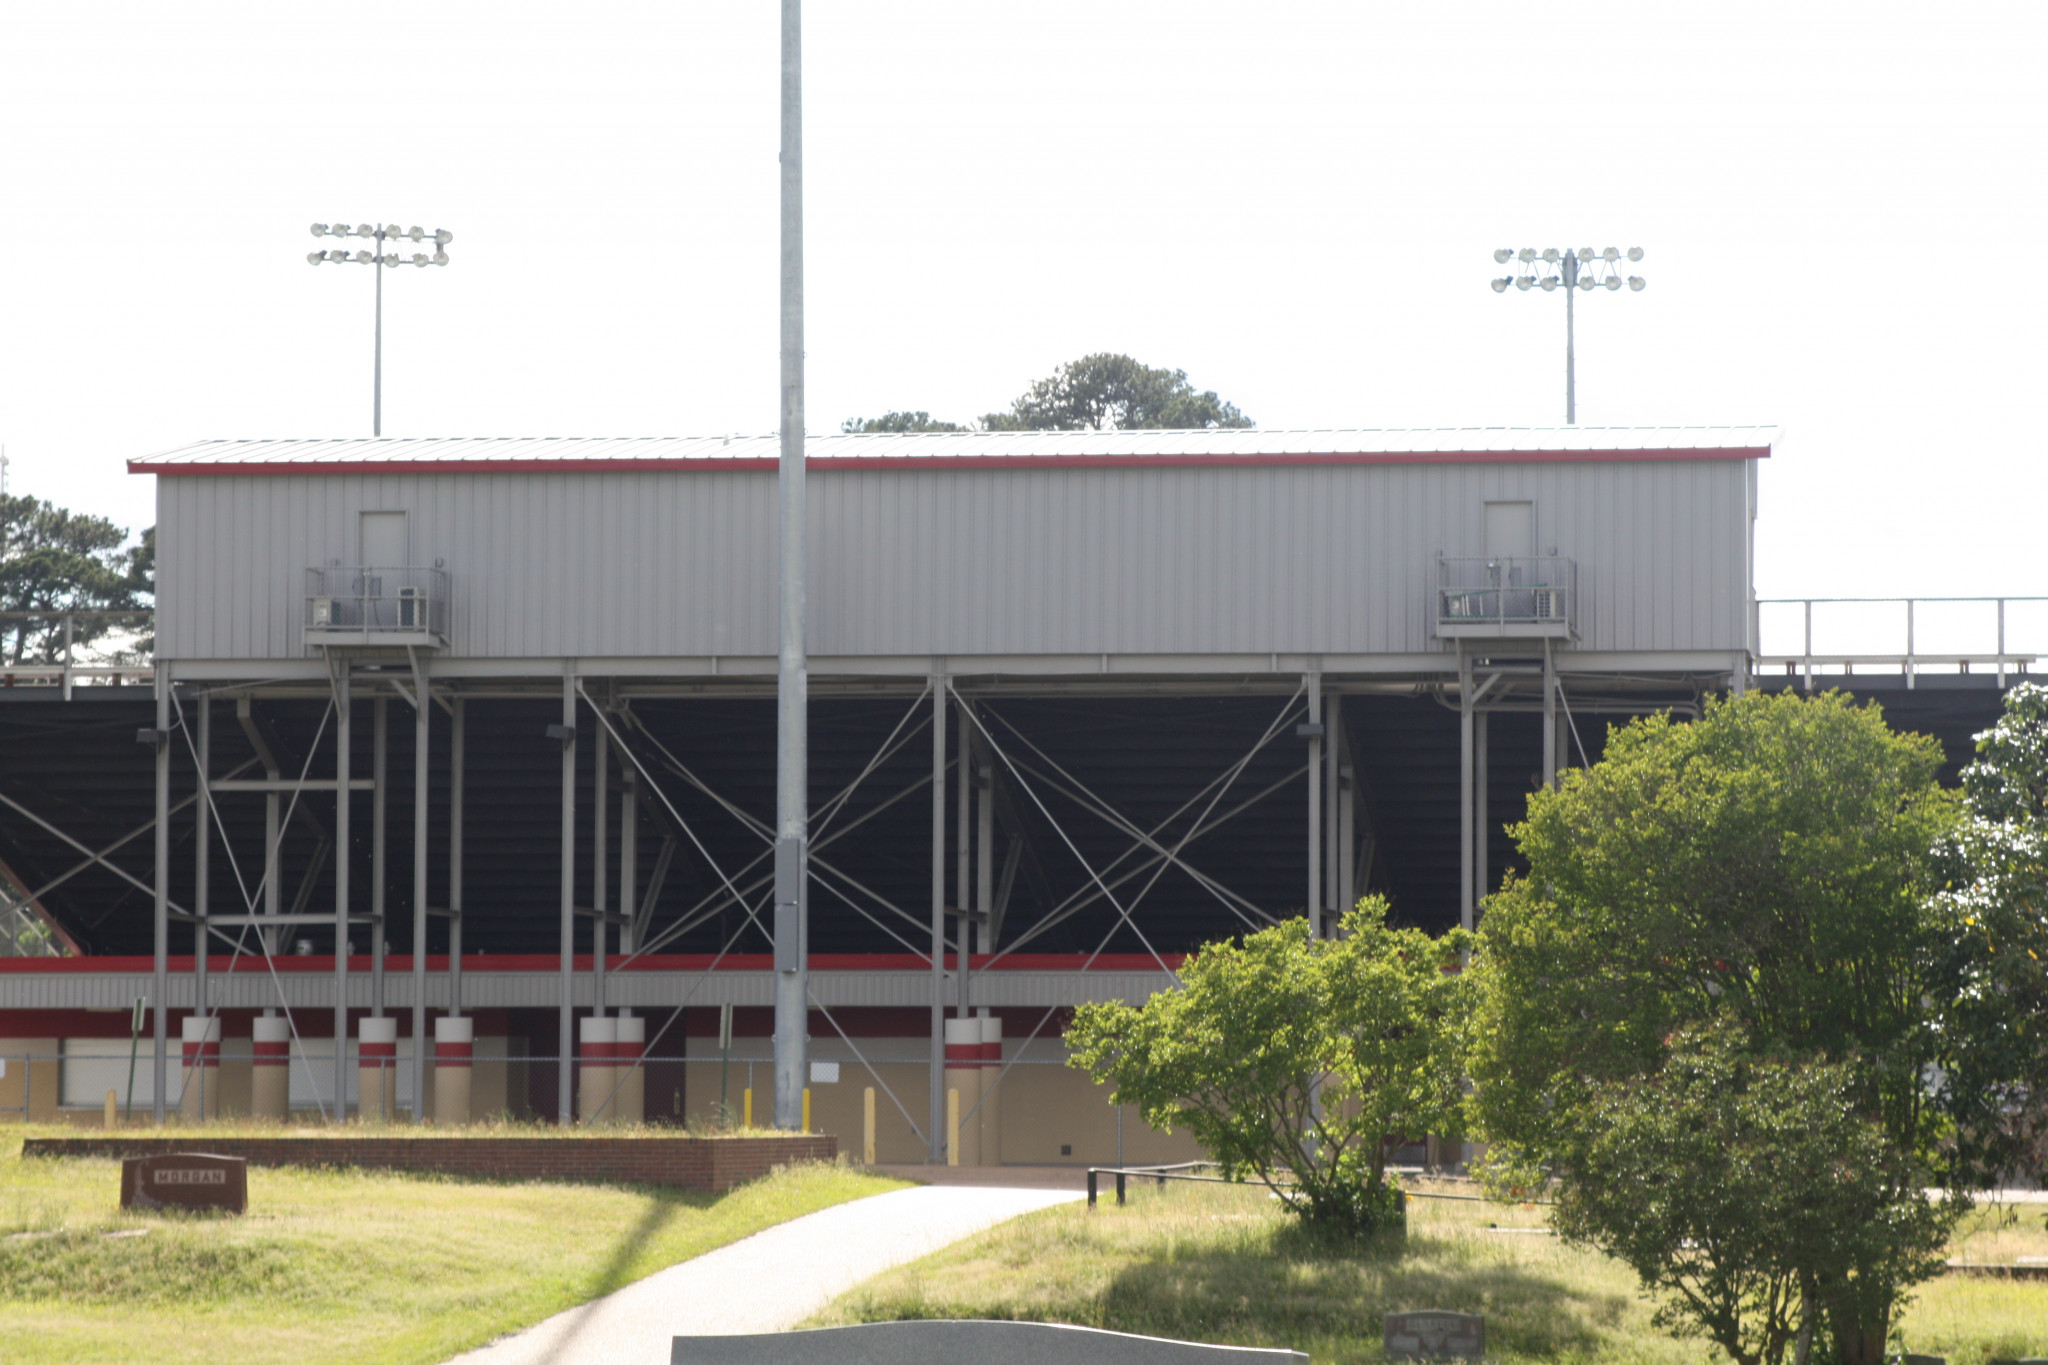 The stadium's new press box and light pole as they stand now.